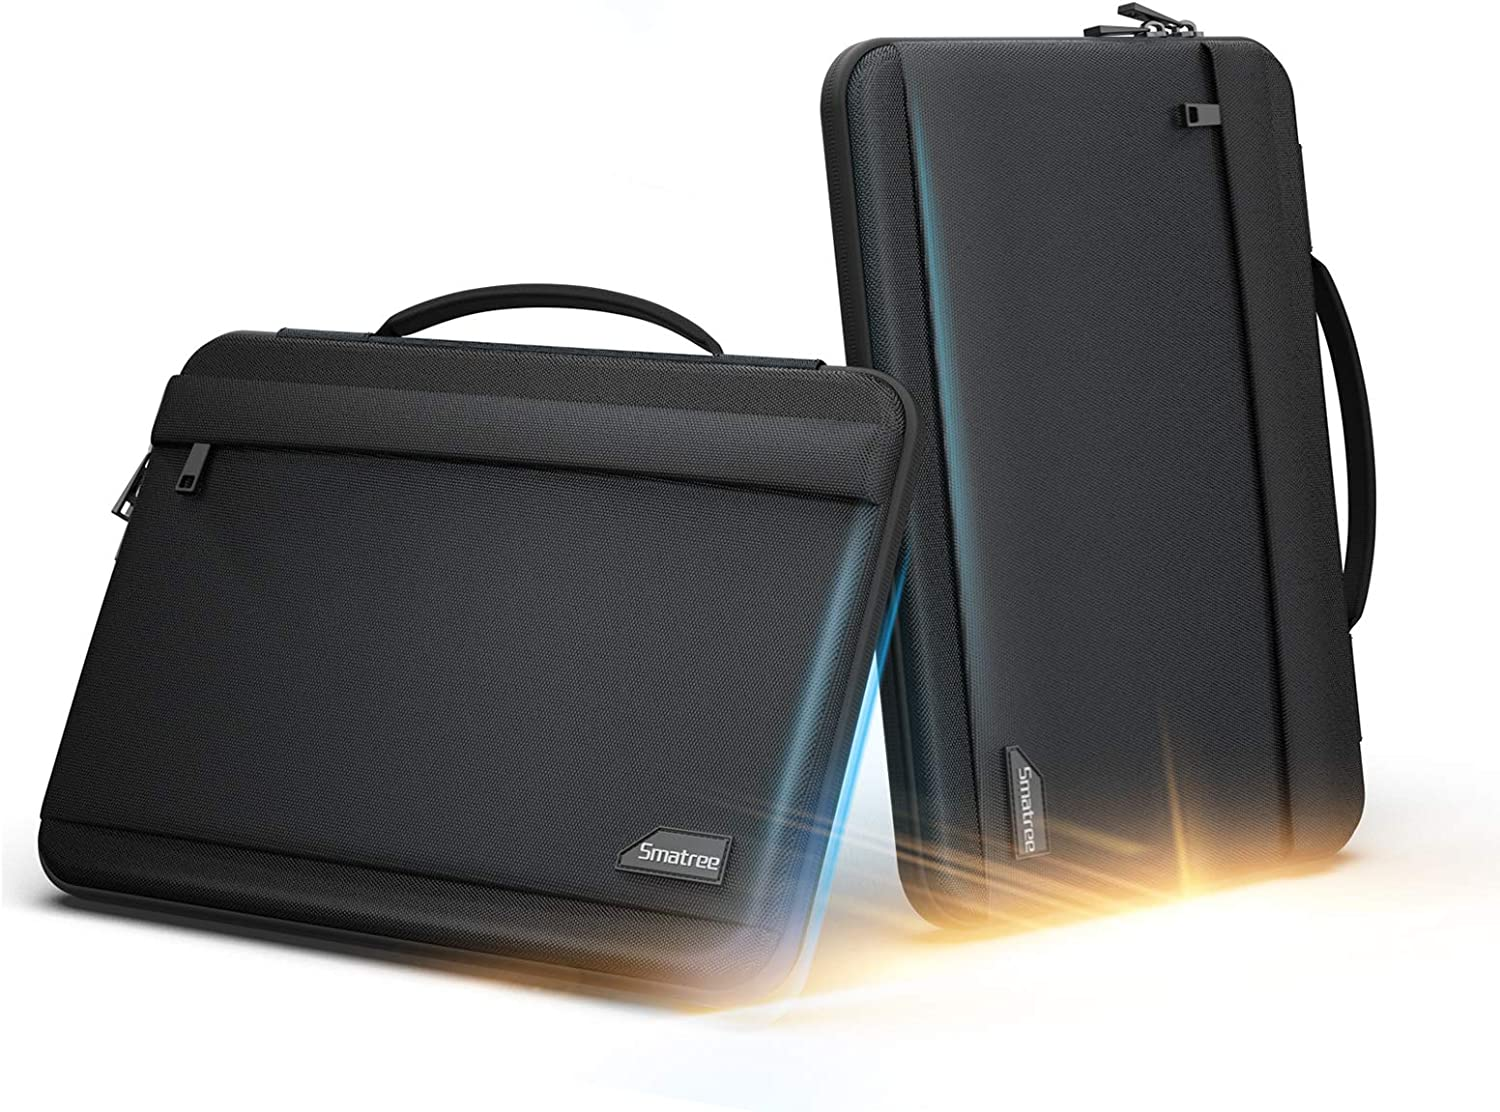 Smatree Hard Sleeve Laptop Bag Compatible with 15.6 inch ASUS VivoBook 15 F515 Laptop, 15.6 inch ASUS VivoBook 15 F515 Laptop Bags , ASUS VivoBook 15 F515 Laptop Cases(Not Fit 17inch Laptop!)